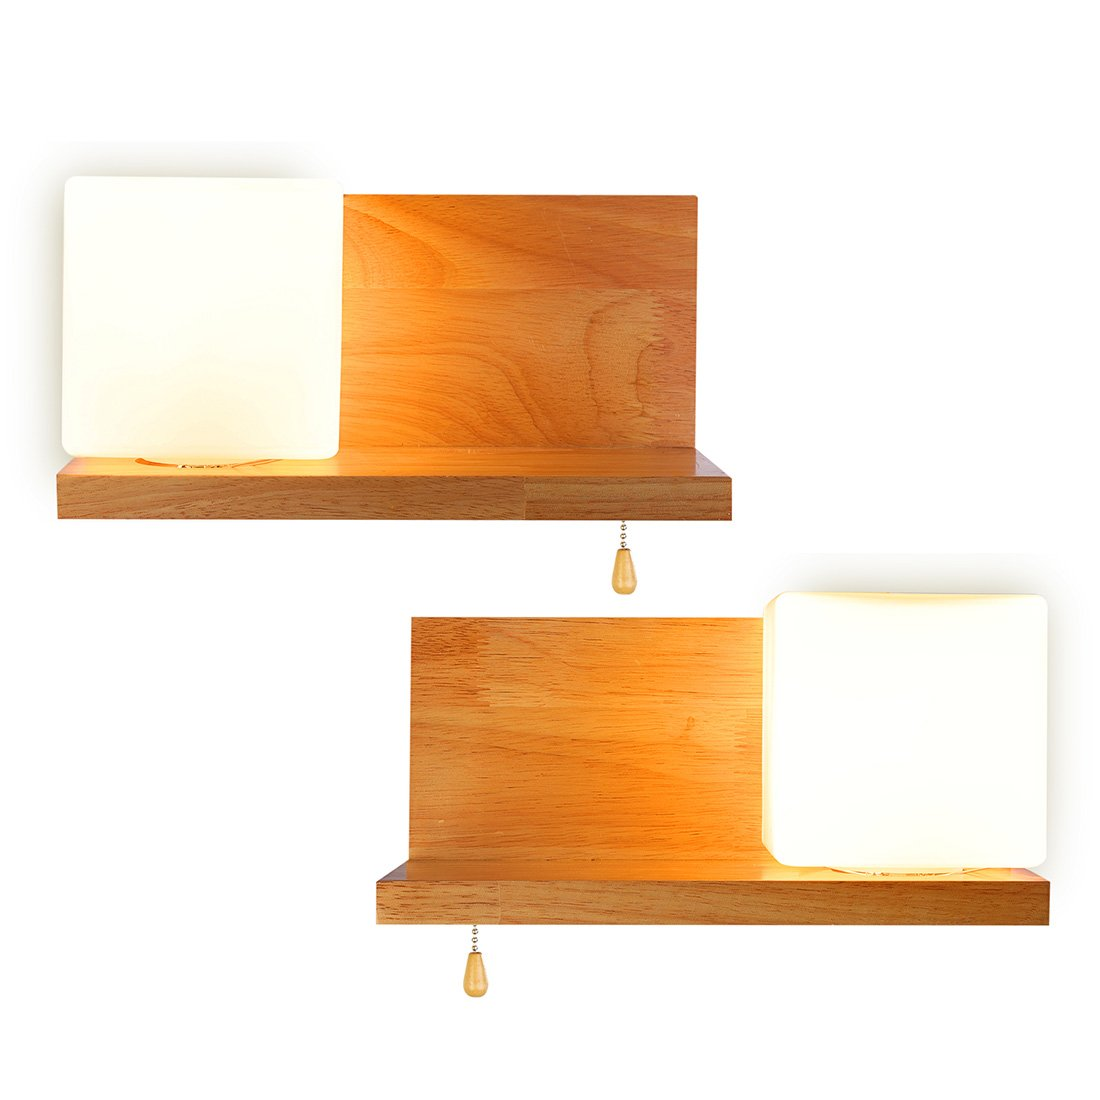 Wood Wall Lamps,Antique Wall Led Lights,Imflint Crude Wood Wall Sconces,Glass Shade,Right & Left